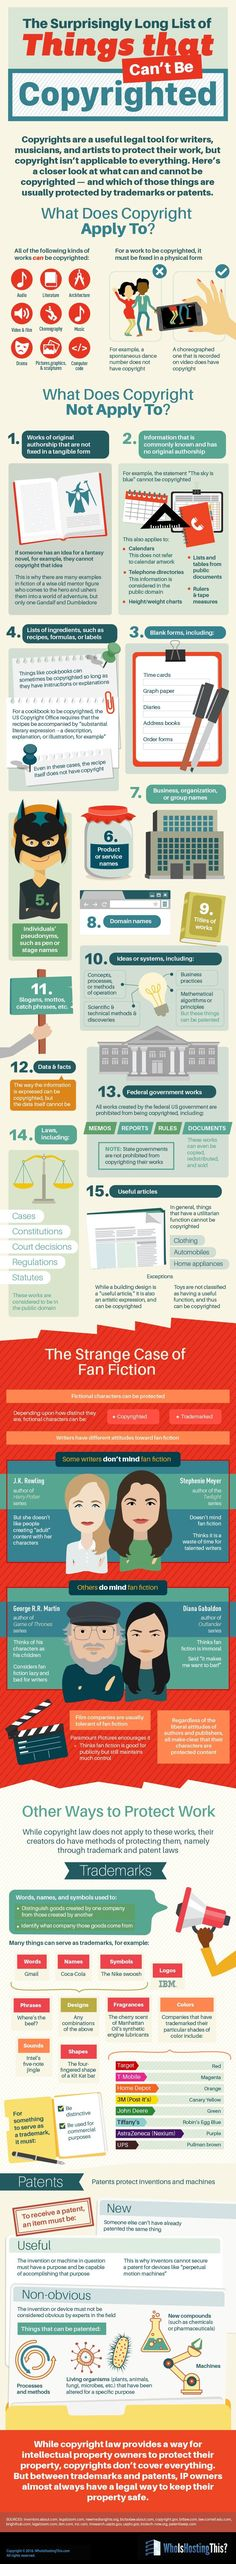 The Long List of Things that Can't Be Copyrighted #Infographic